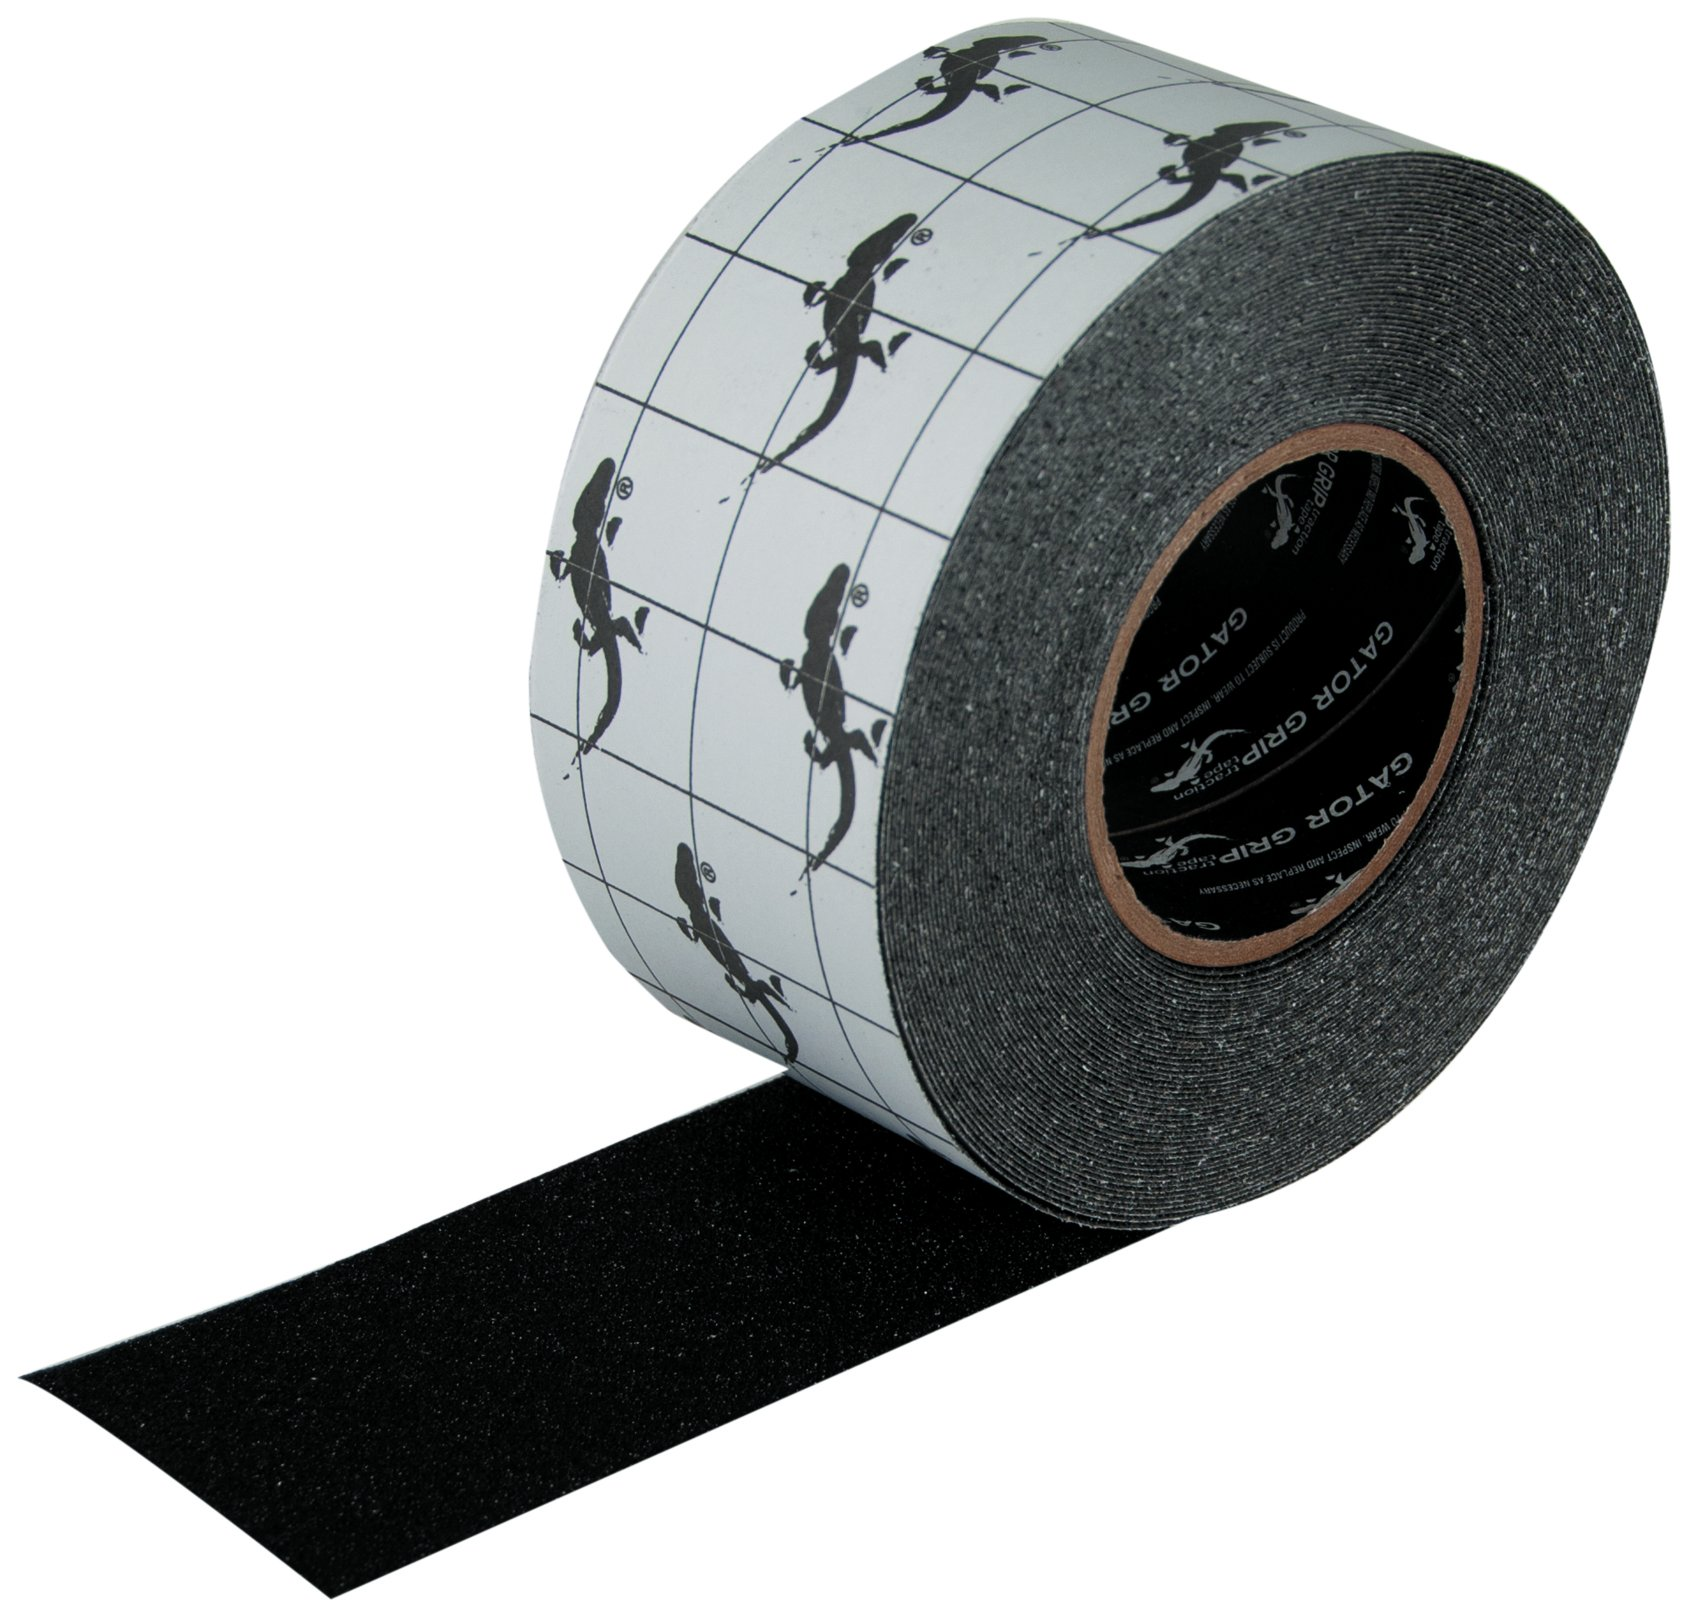 Gator Grip  : SG3103B Premium Grade High Traction Non Slip 60 Grit Indoor Outdoor Anti-Slip Tape, 3 Inch x 60 Foot, Black